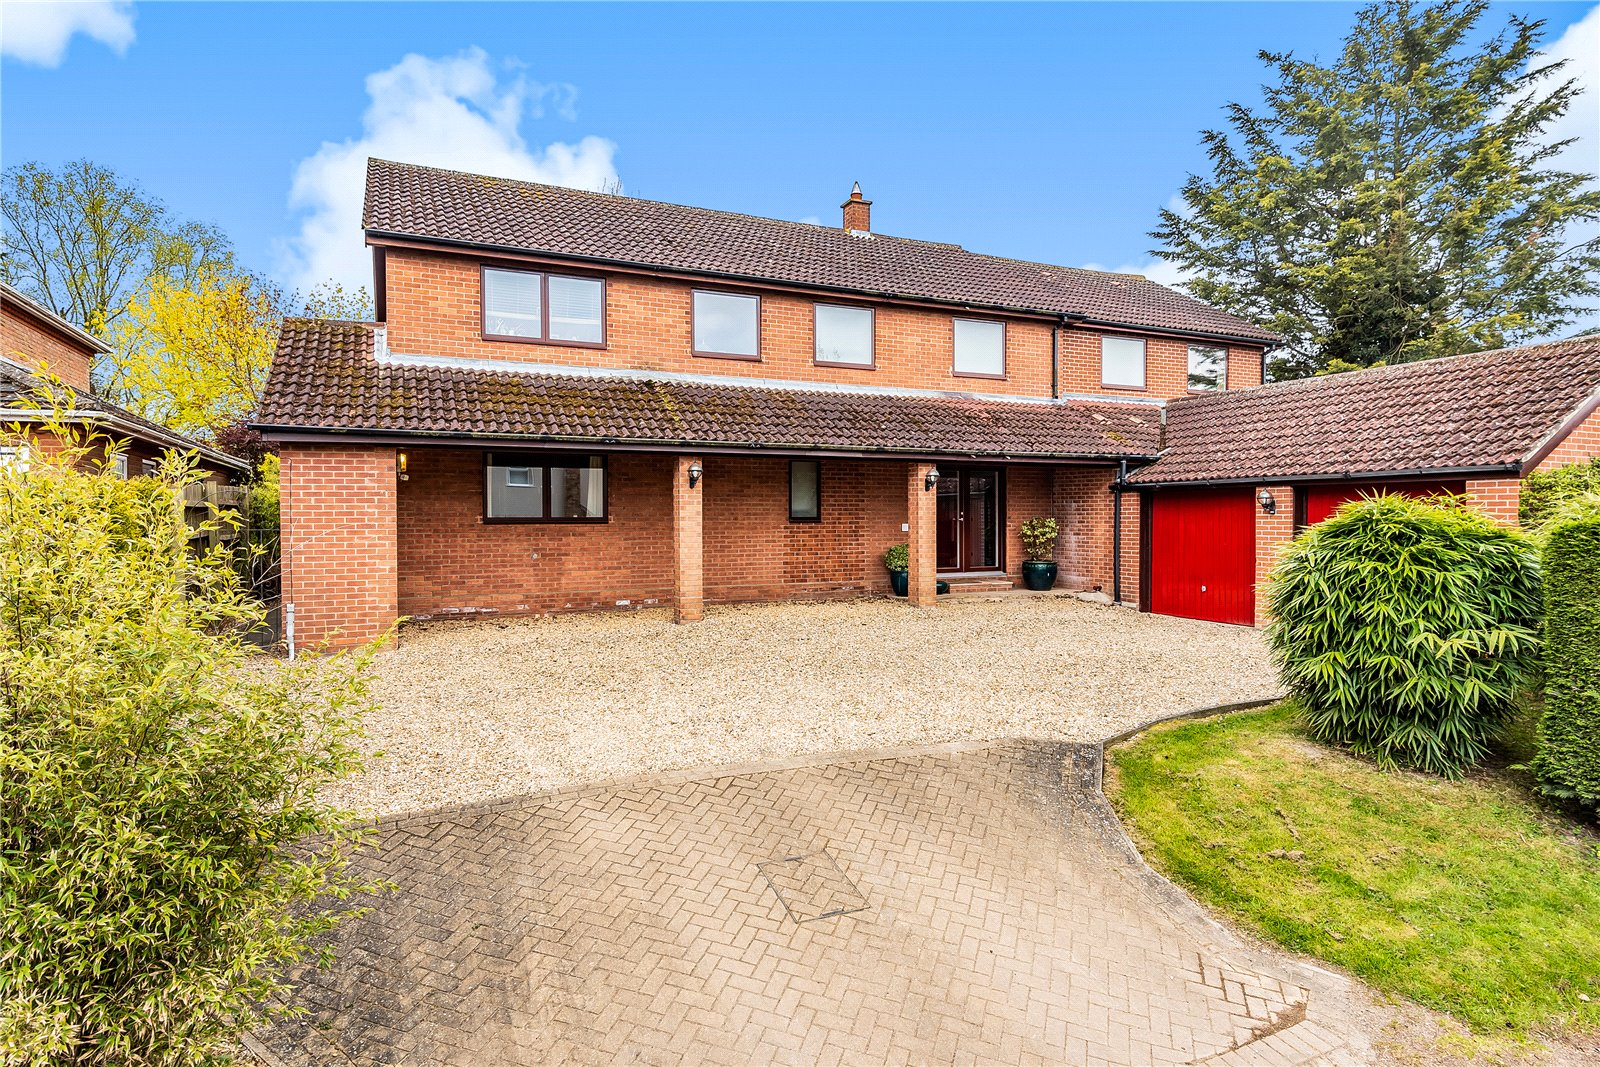 6 bed house for sale in High Street, Graveley, PE19